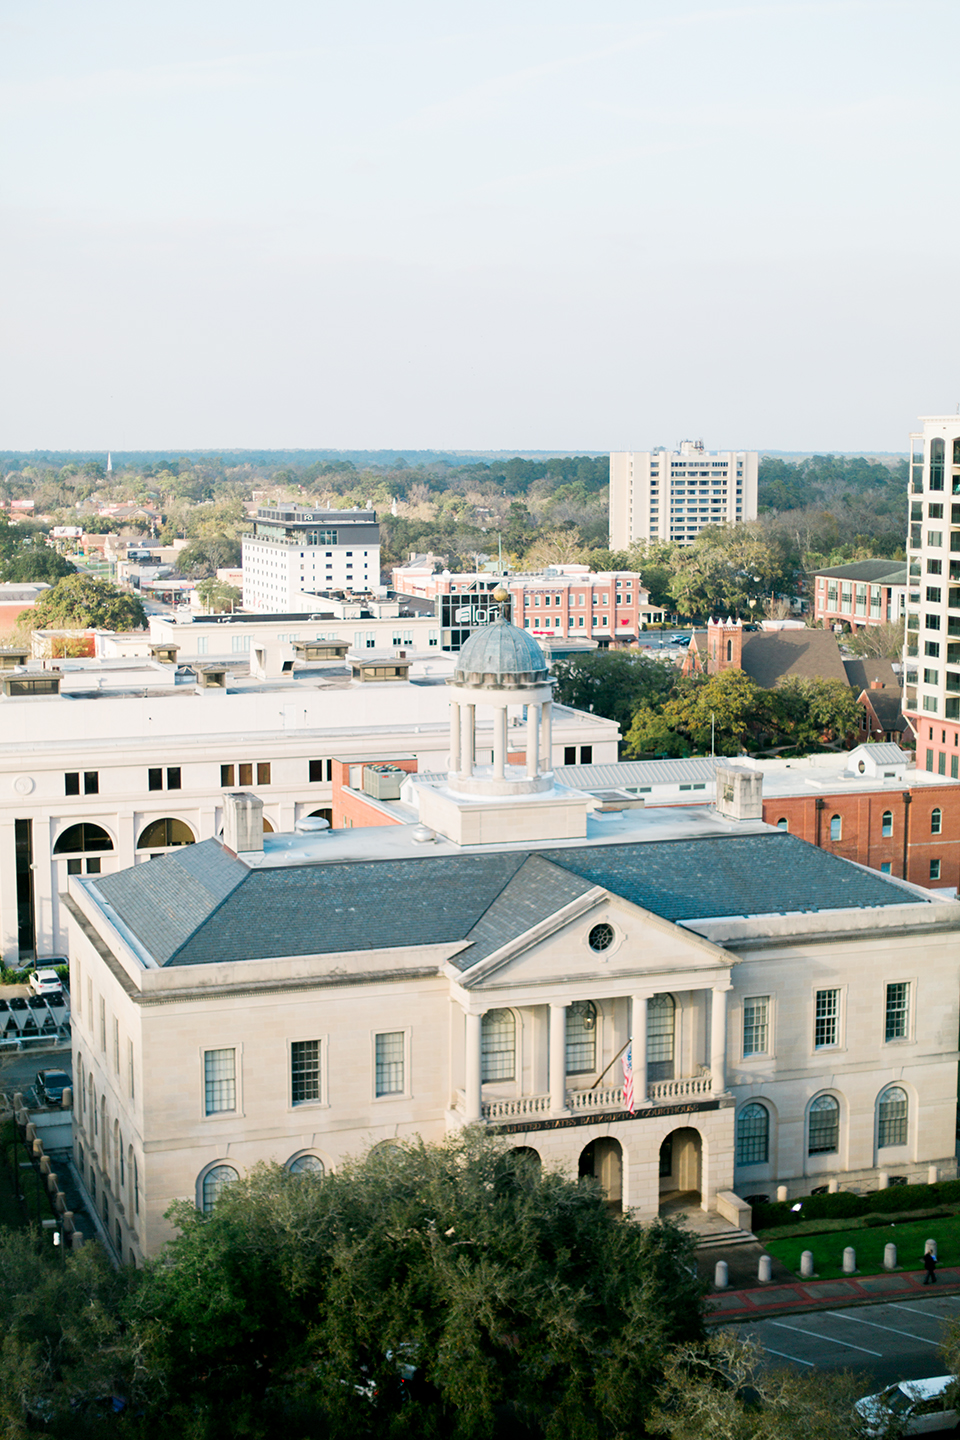 Picture of the United States Bankruptcy Courthouse in Tallahassee, Florida.